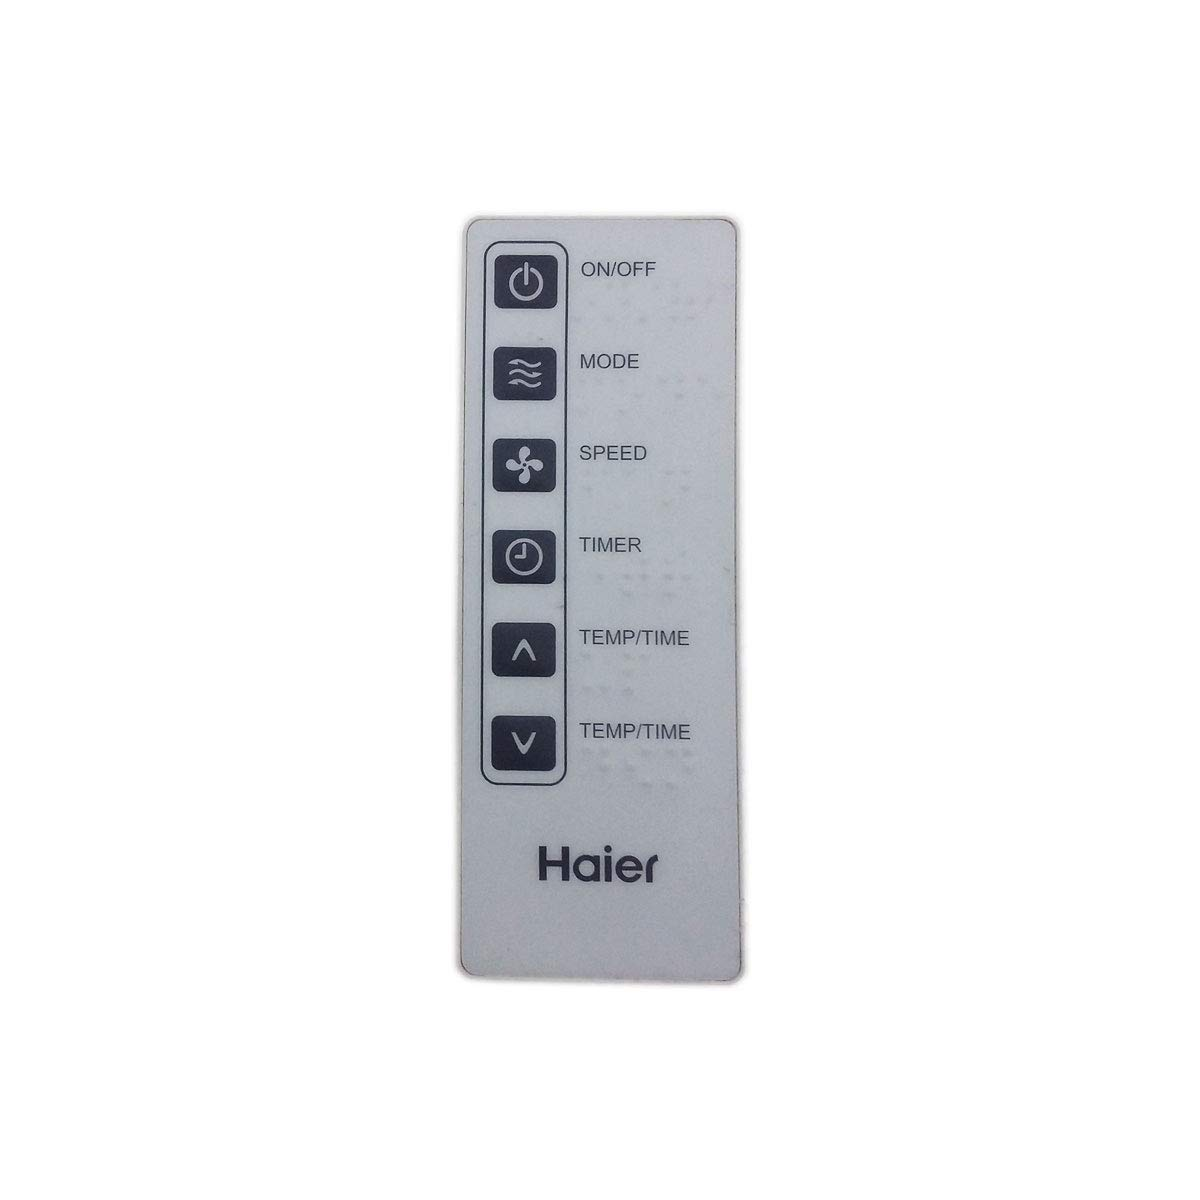 Factory Original Haier AC Remote Control/Works with Many Air Conditioners (A0010401791)